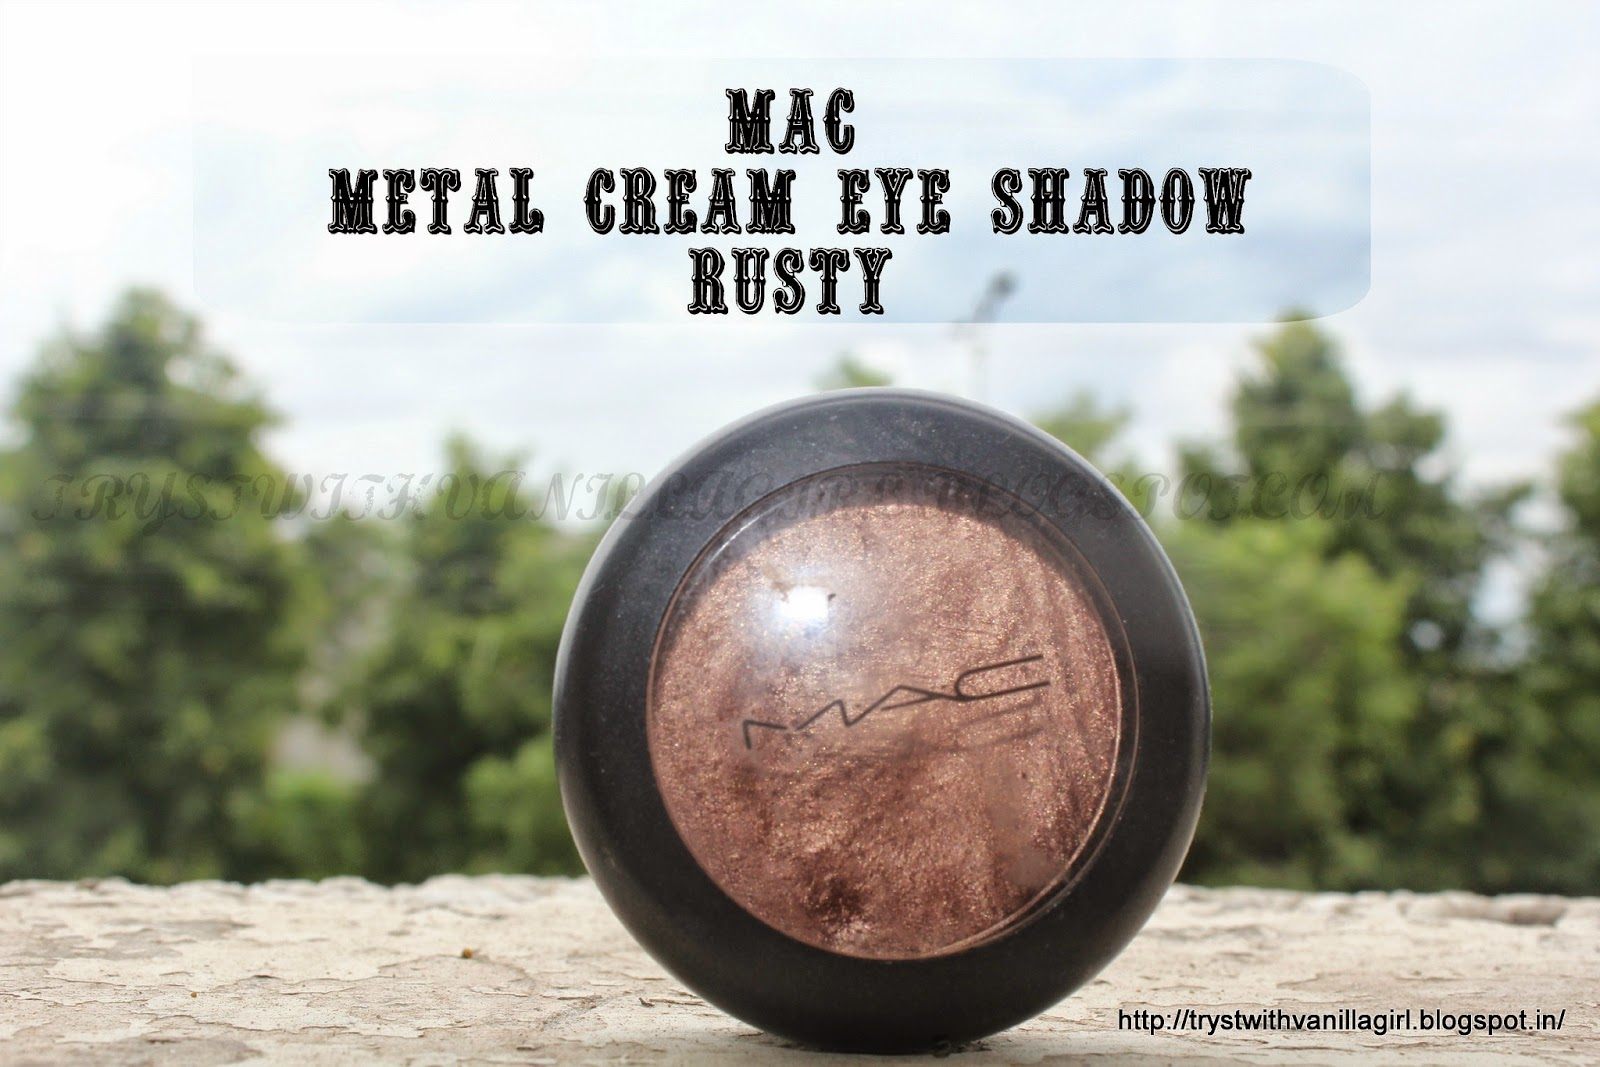 MAC RUSTY METAL CREAM EYE SHADOW